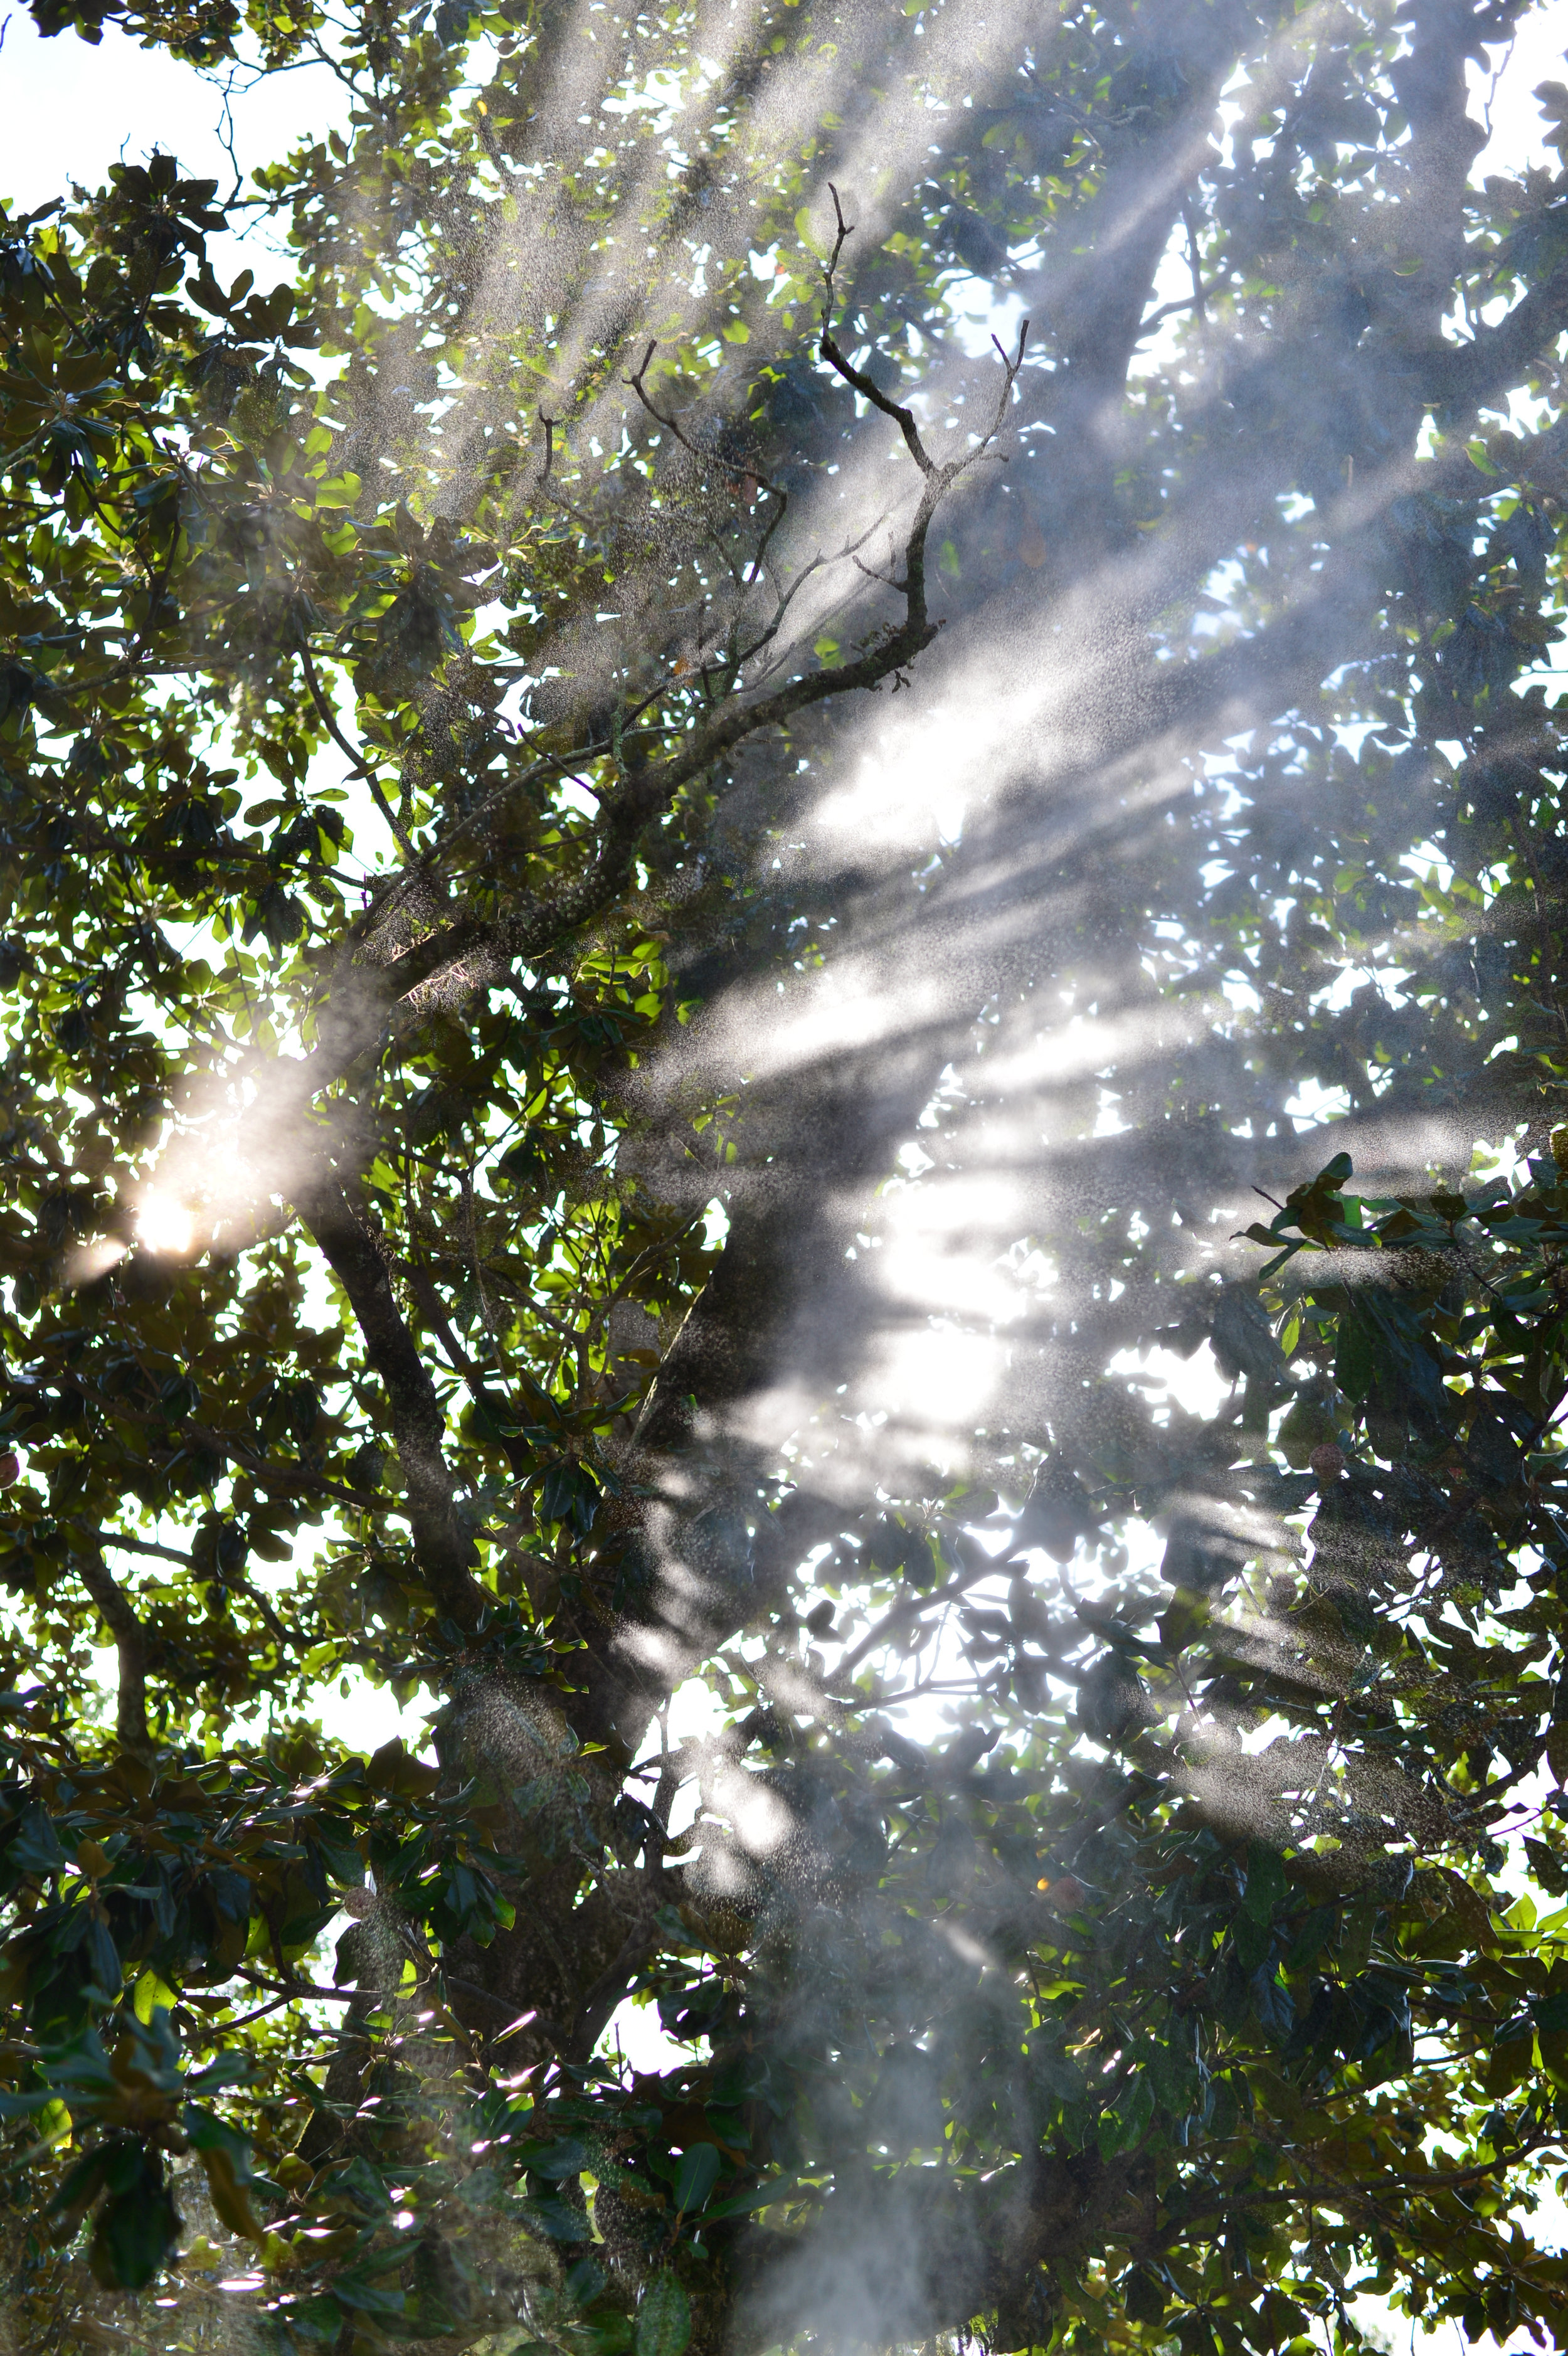 water and light through trees 2017.jpg